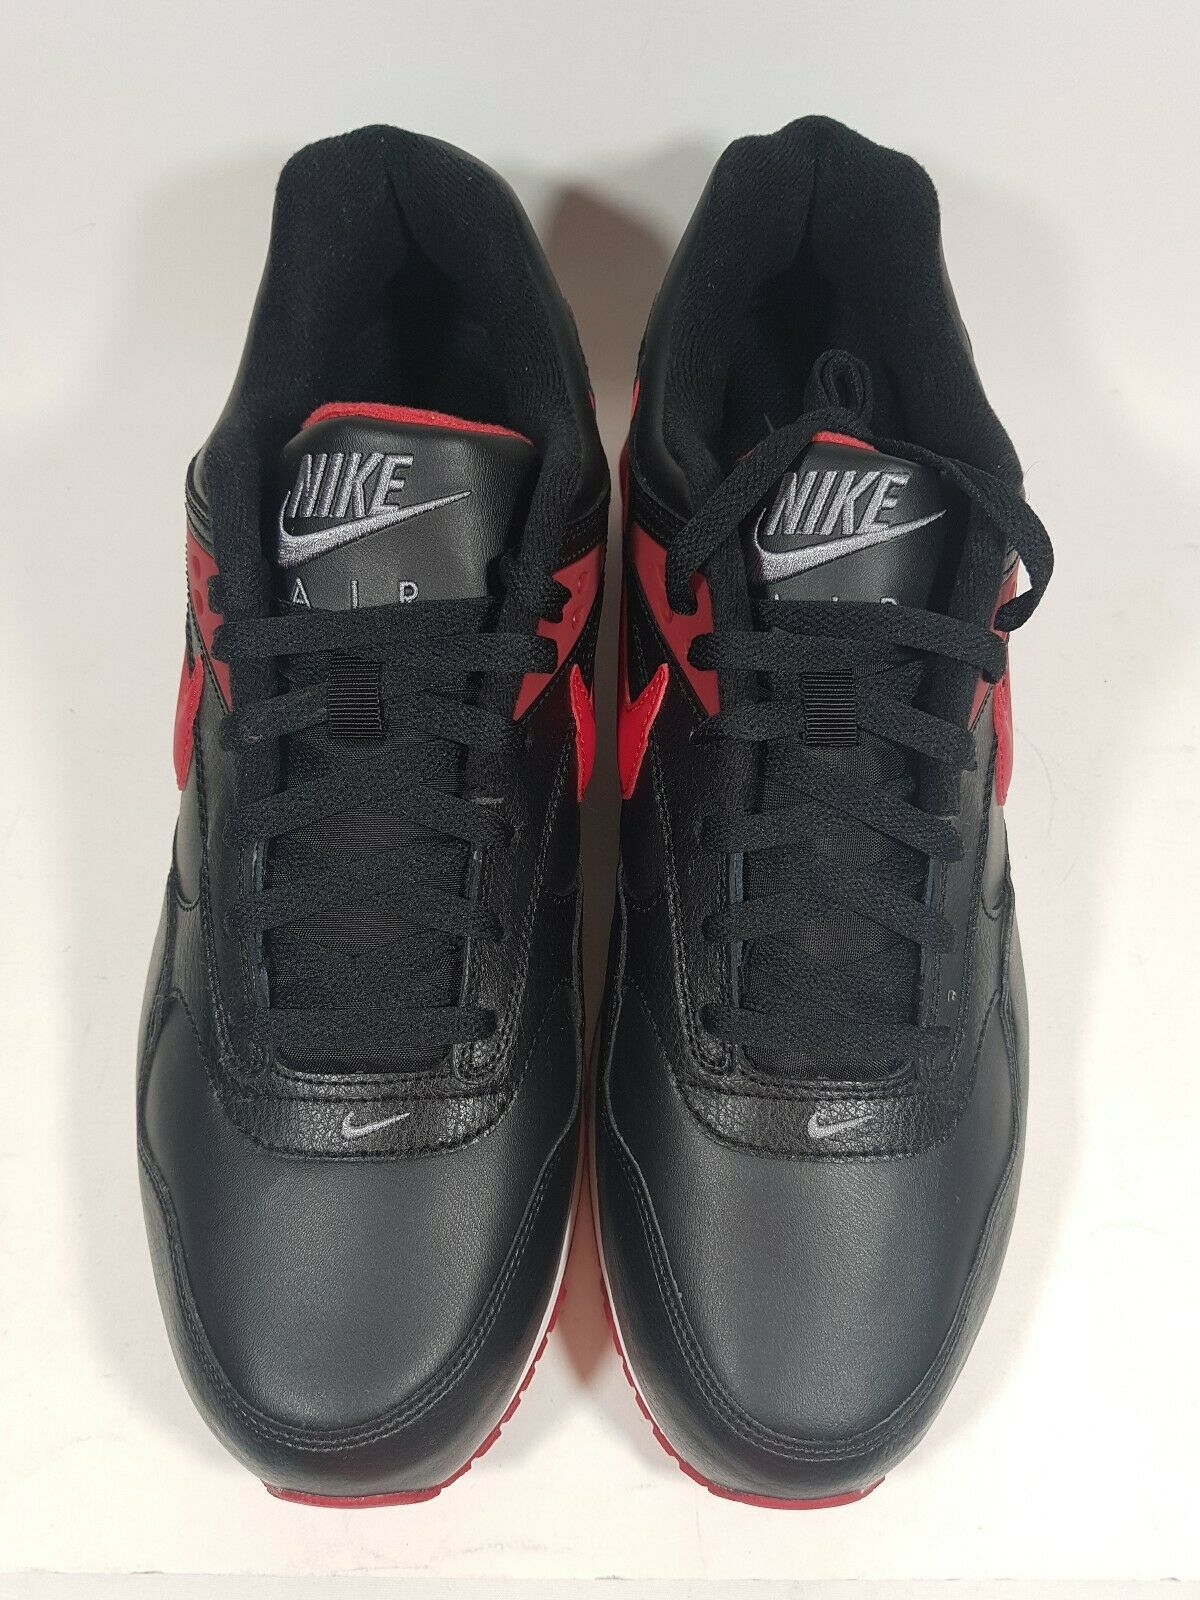 New Nike Air MAx Correlate Leather Running Black 518292 060 Mens Shoes 13 Rare image 4